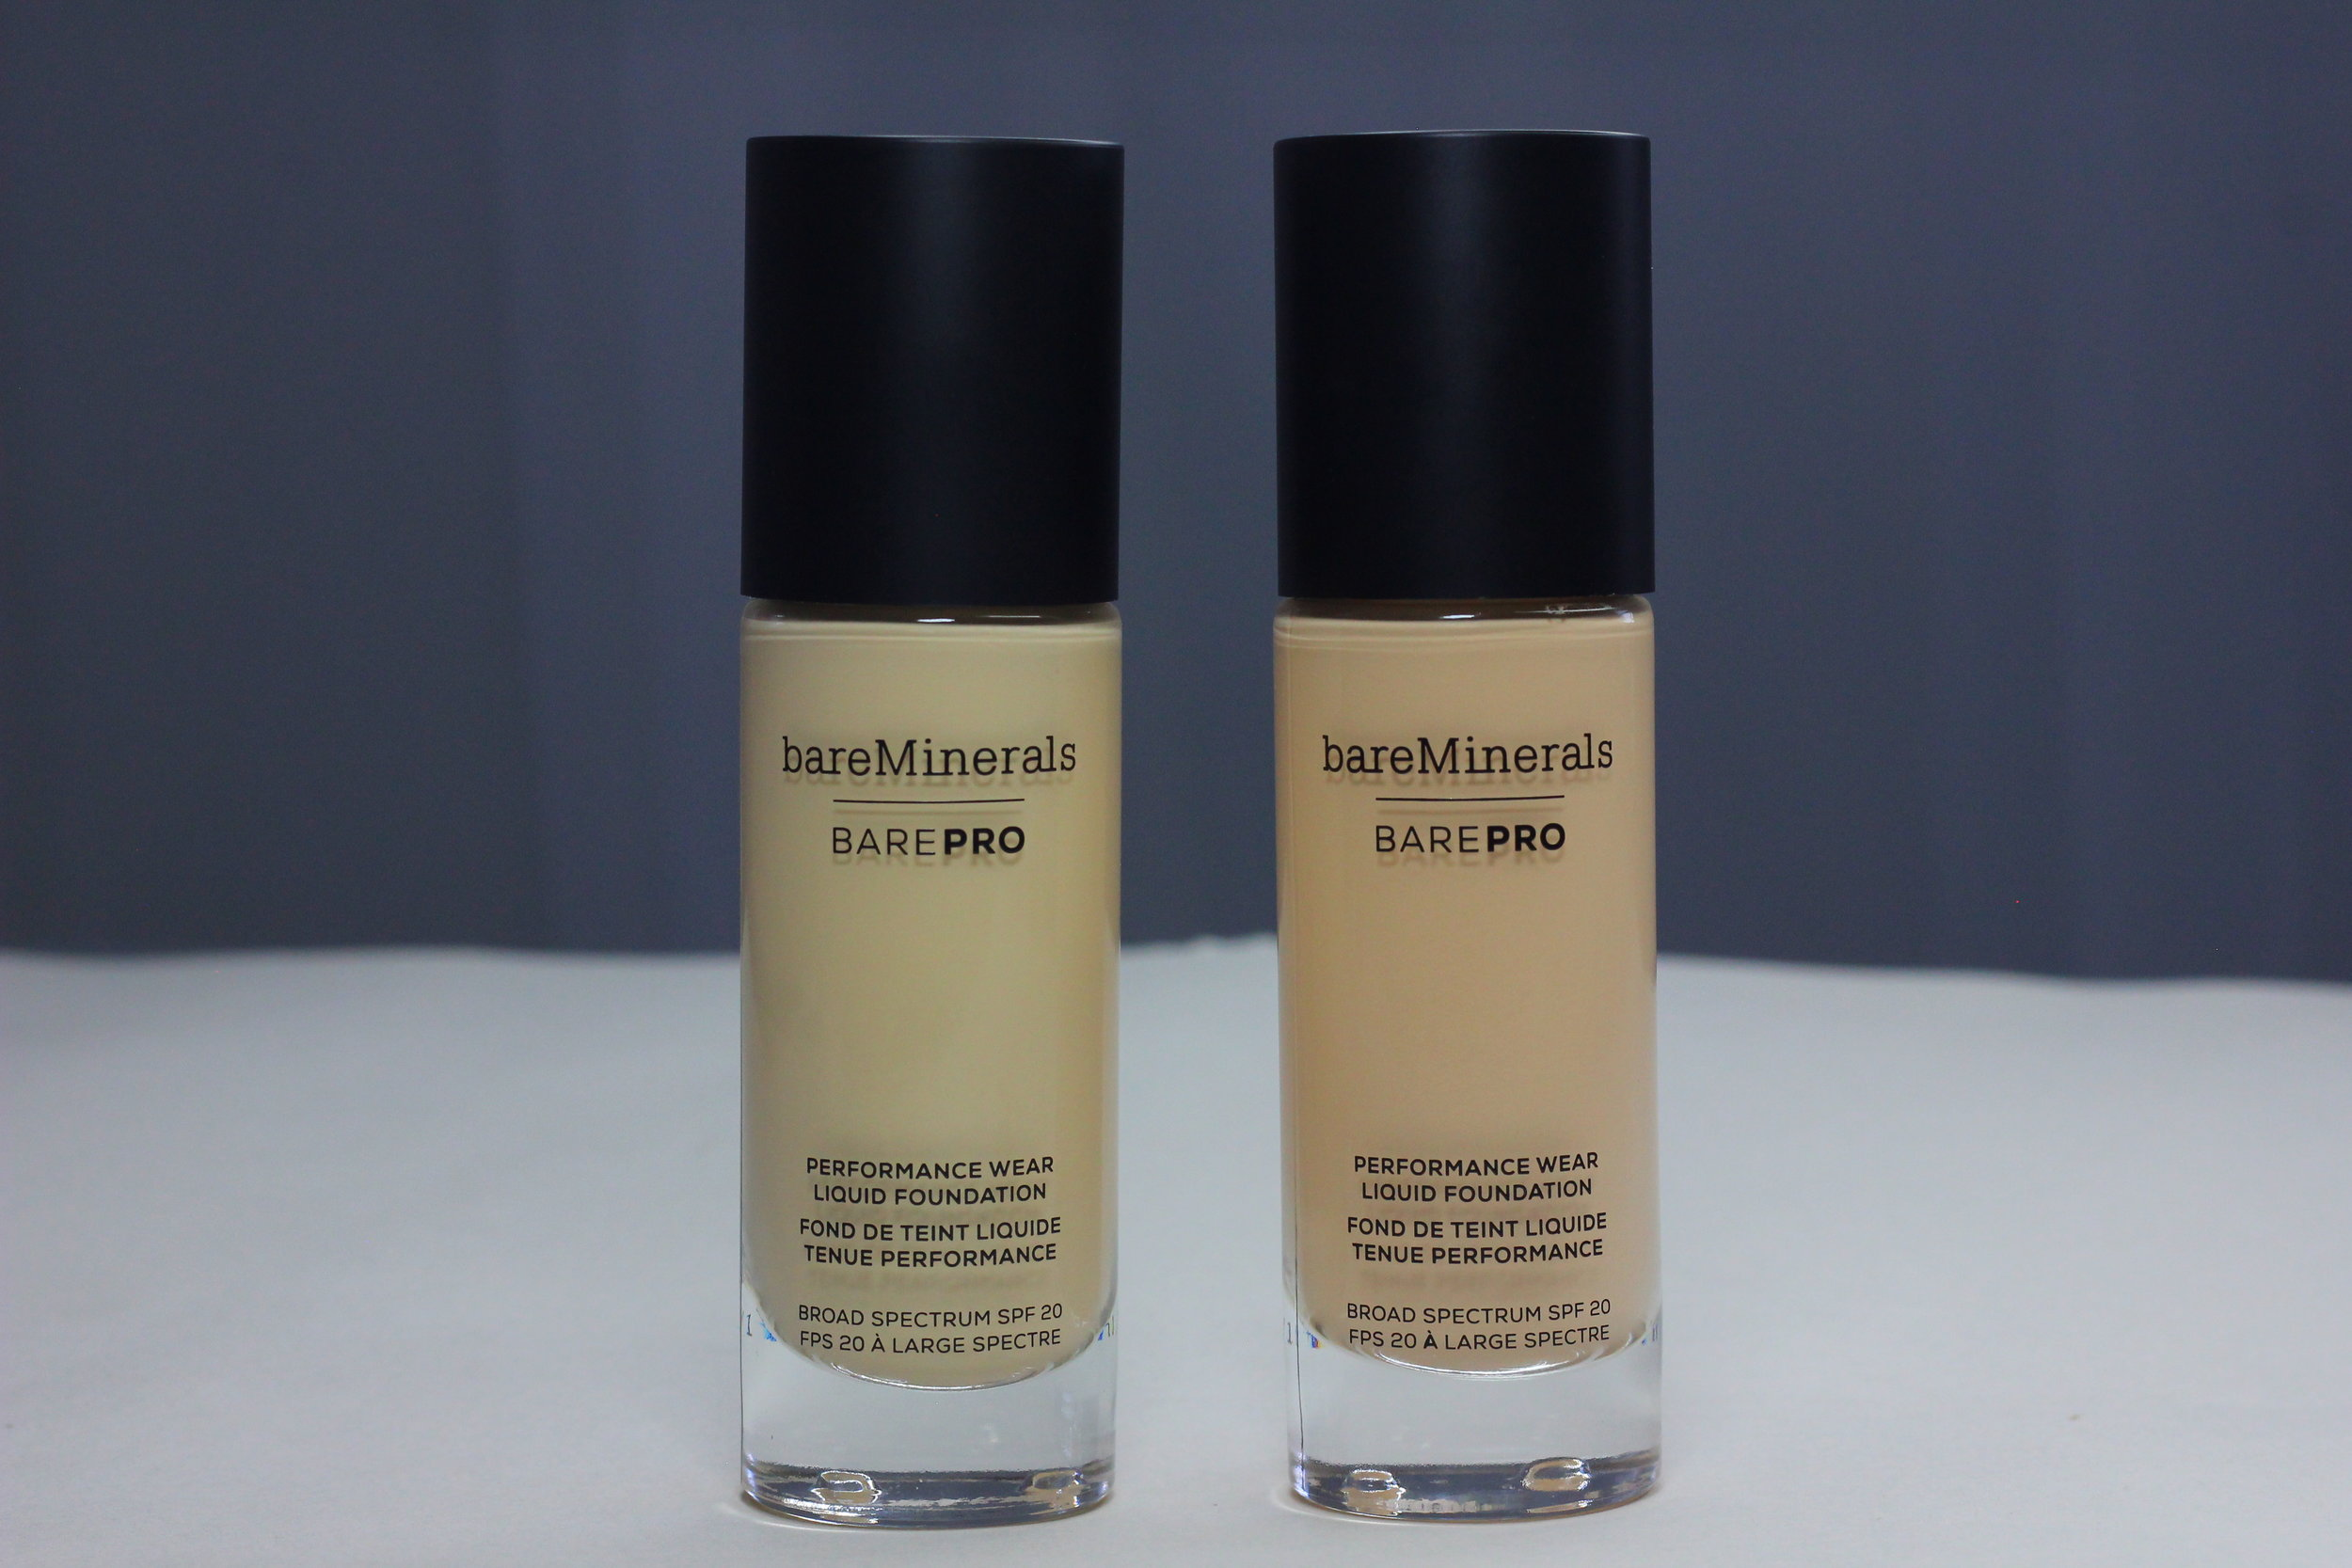 bareMinerals Bare Pro Full Coverage Foundation review